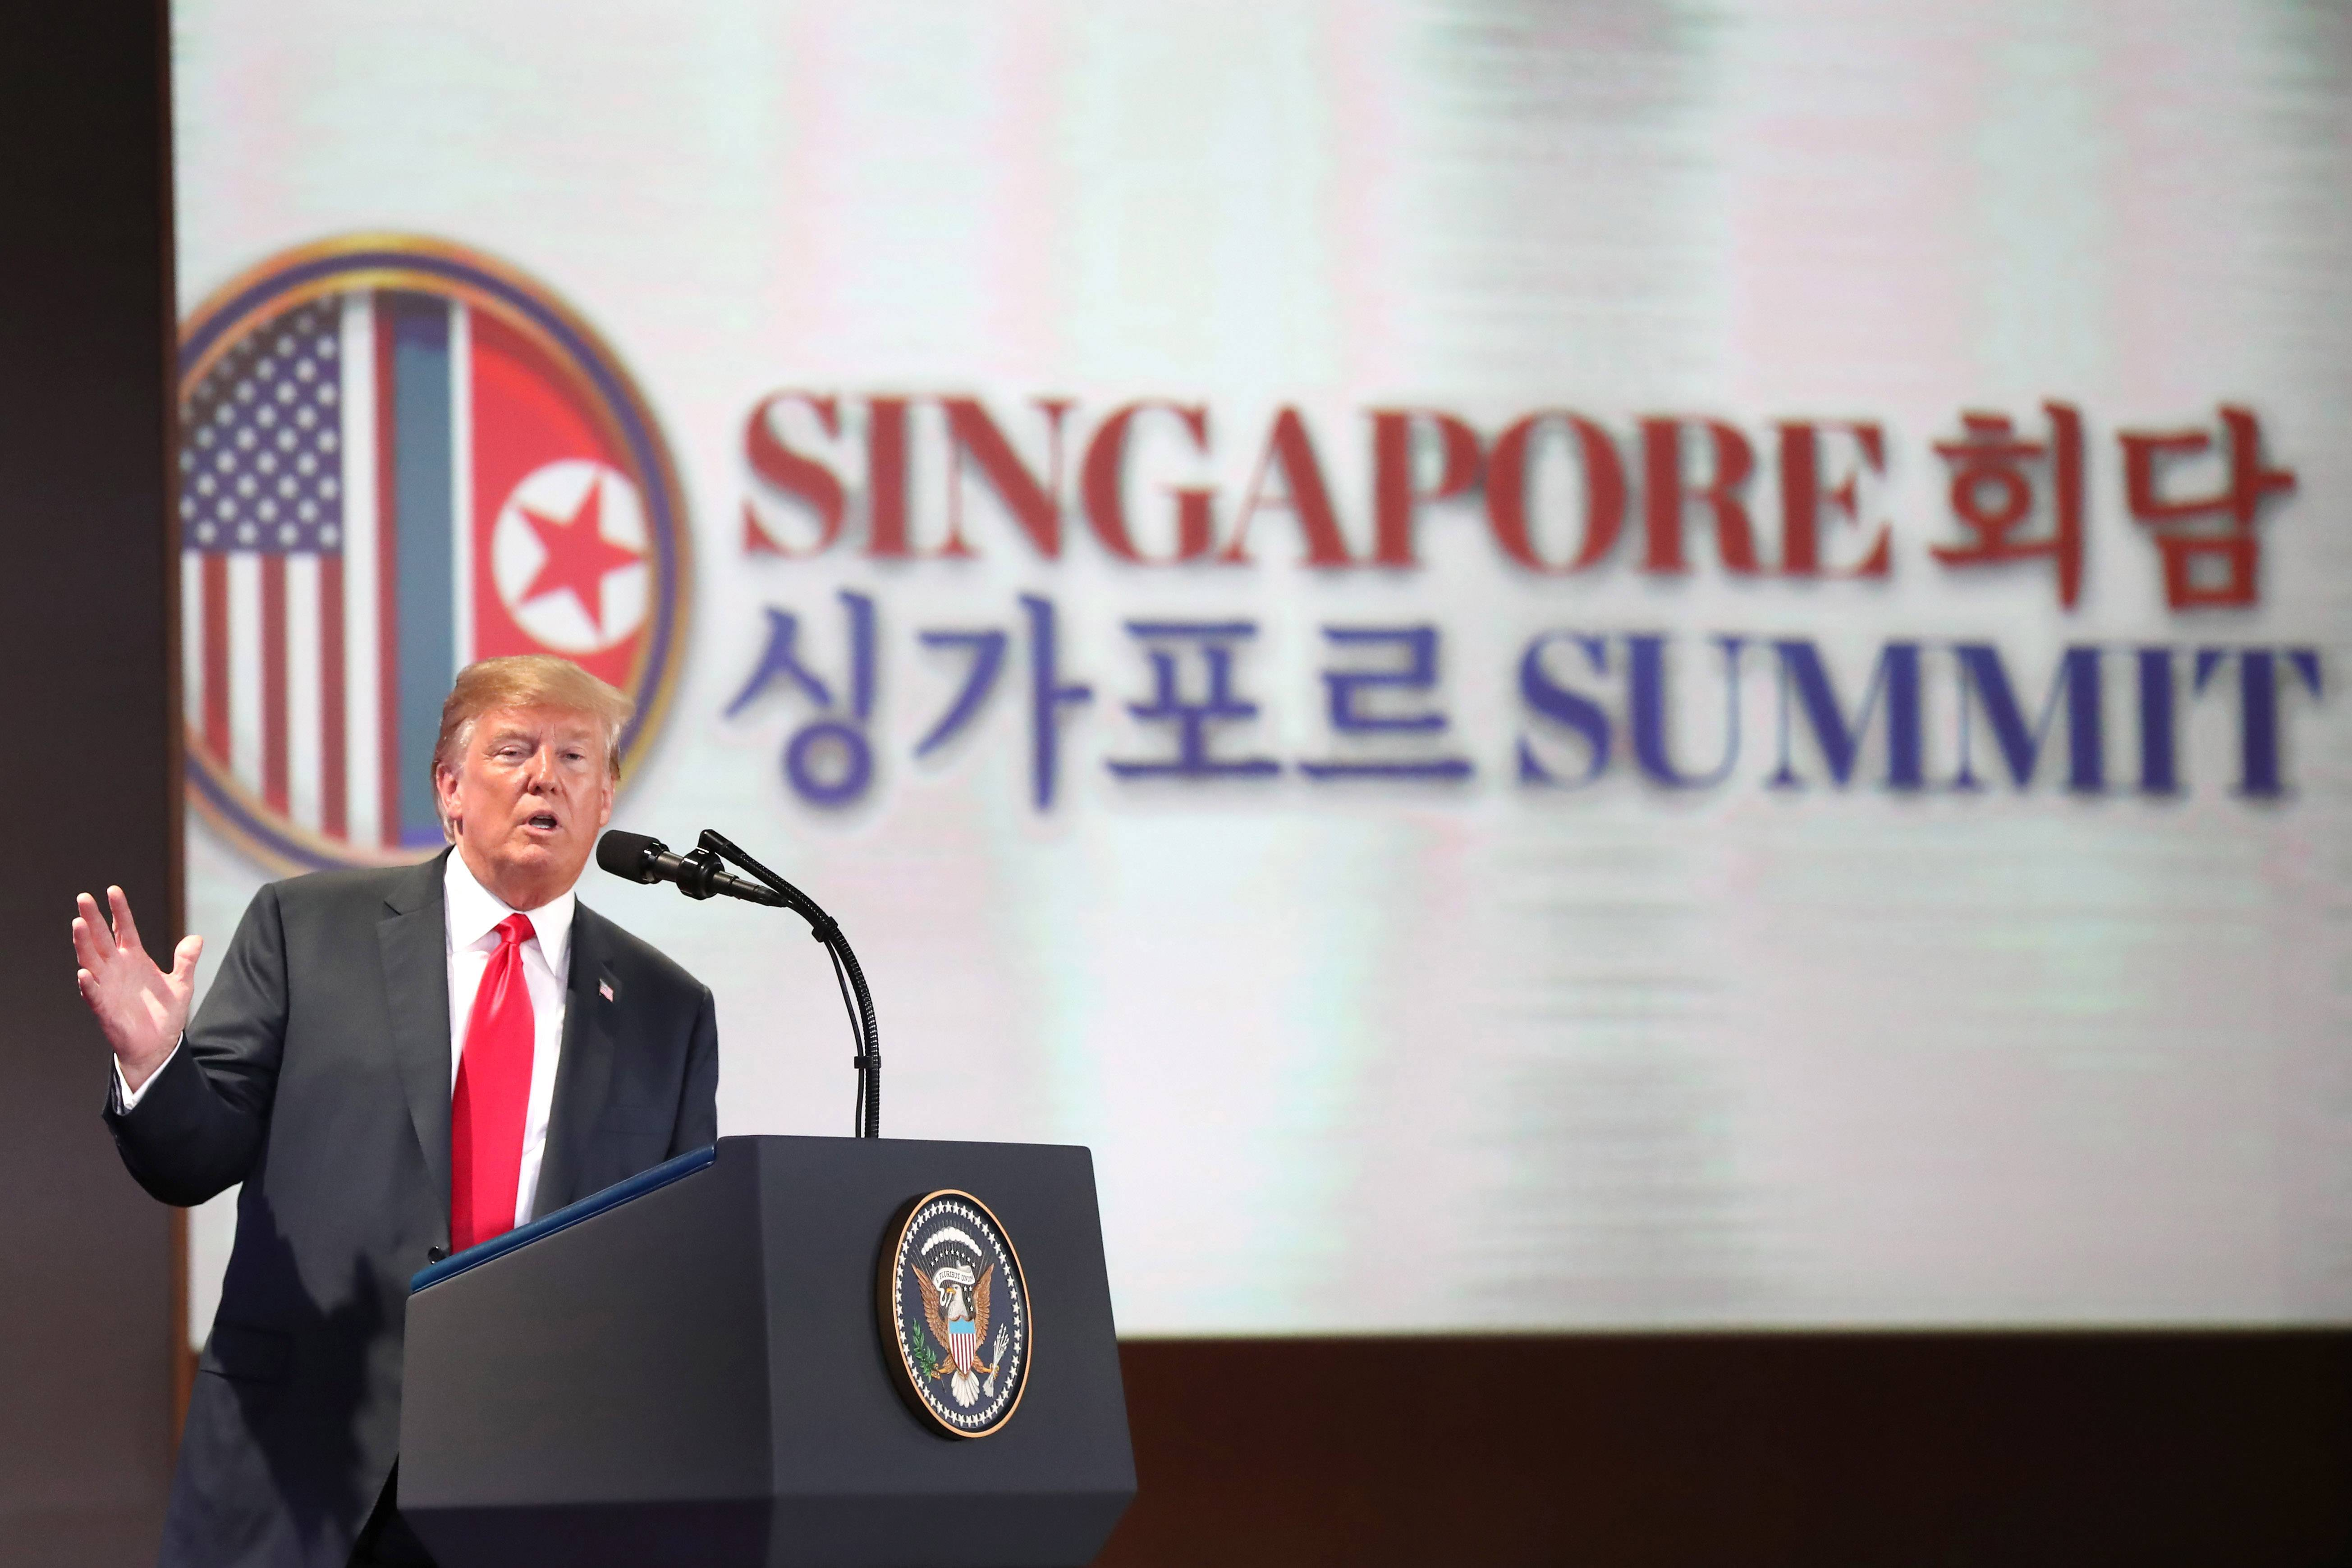 U.S. President Donald Trump speaks during a news conference in Singapore.